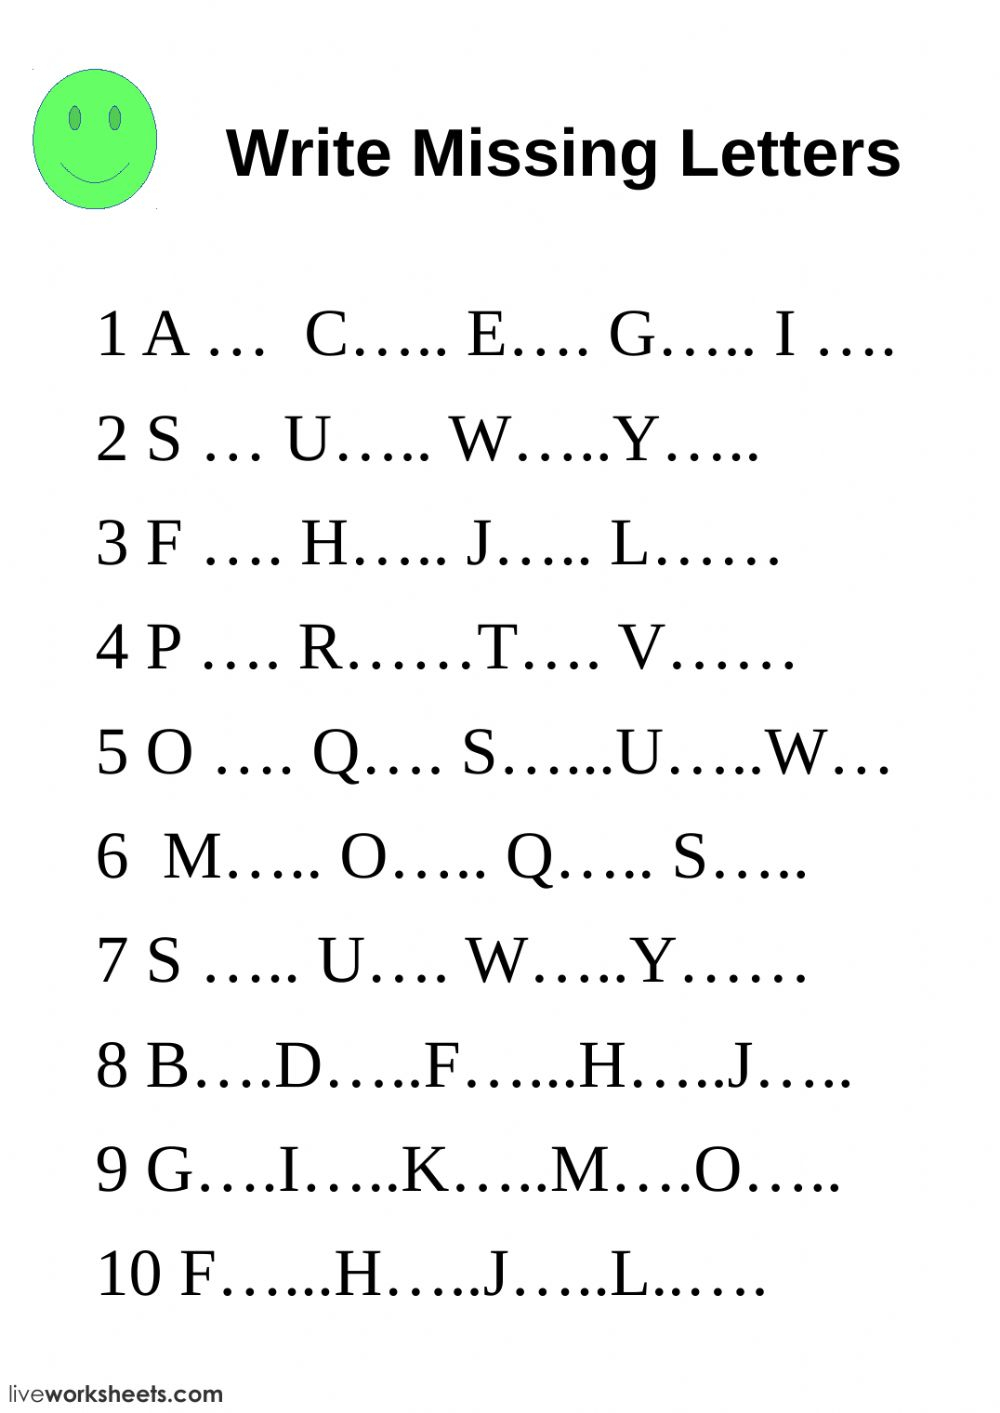 Write Missing Letters - Interactive Worksheet intended for Alphabet Worksheets Fill In The Missing Letter